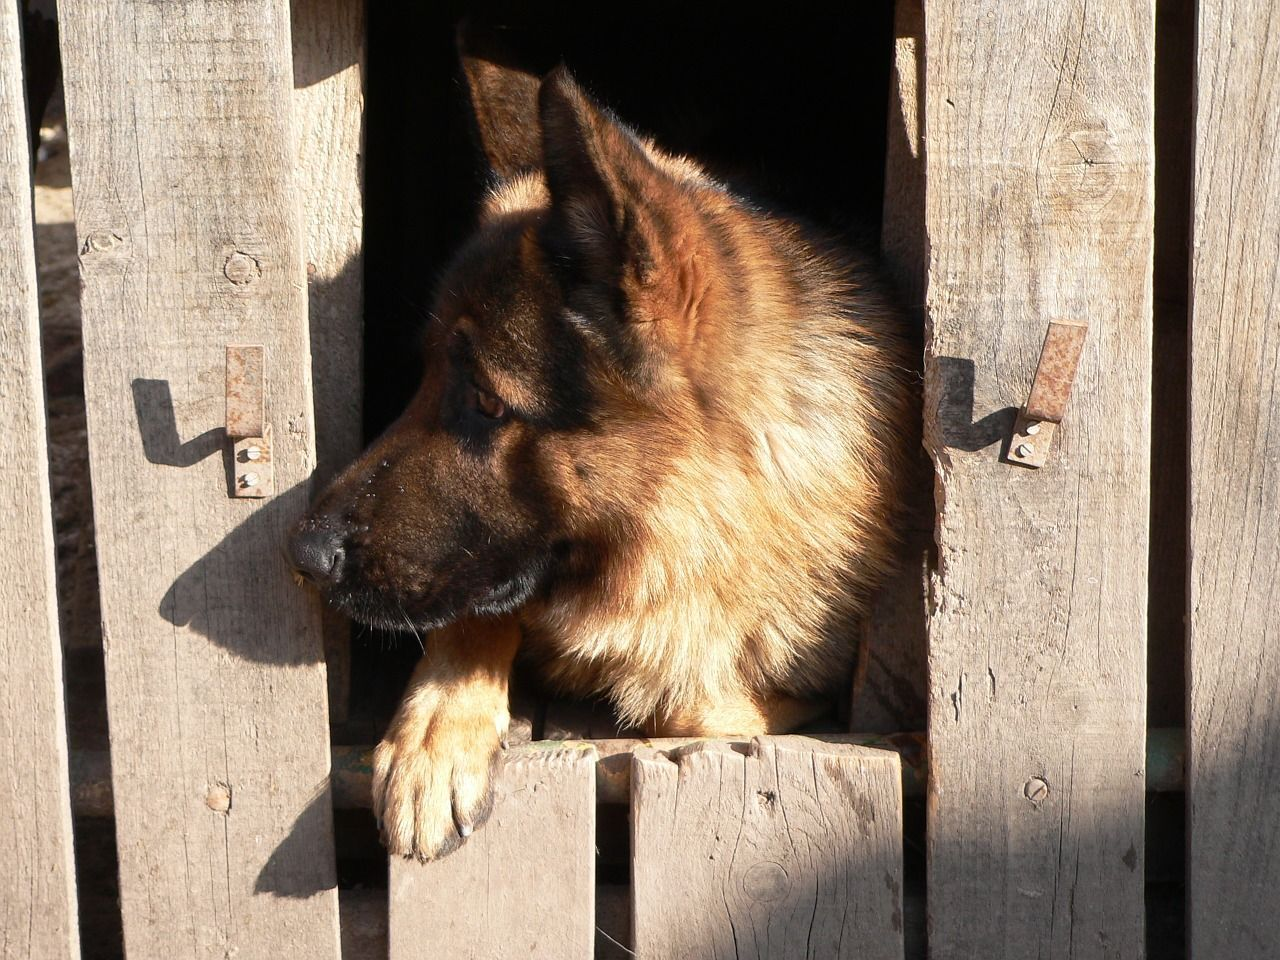 Crate Training German Shepherd Dog Puppy 4 Simple How To Steps